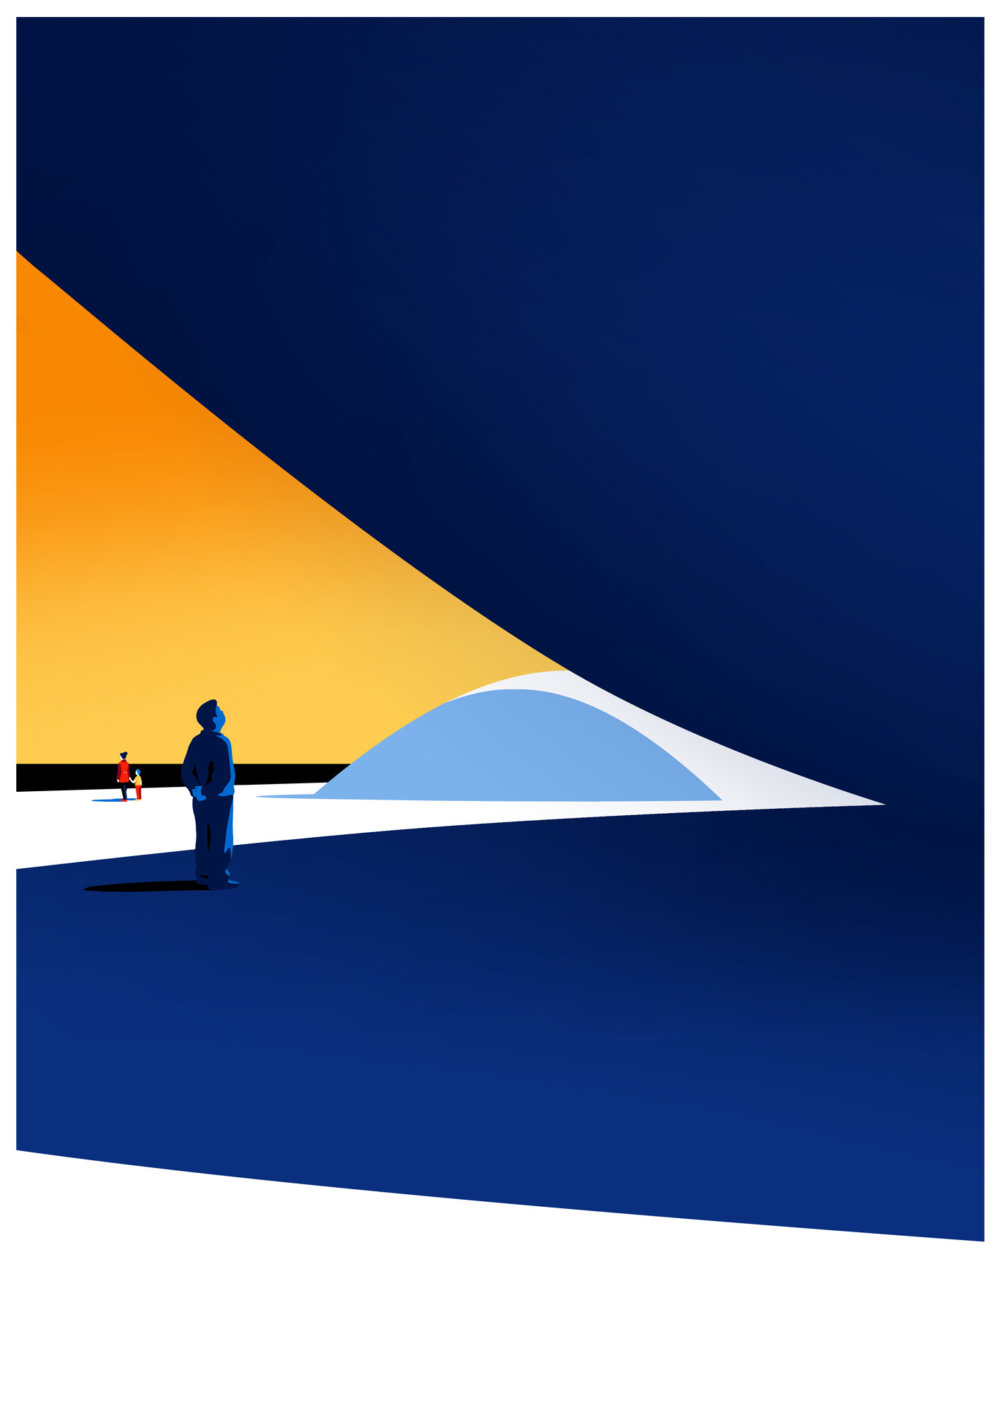 Utopia Architectural Illustration Series Featuring Oscar Niemeyers Design Lines By Levente Szabo 3